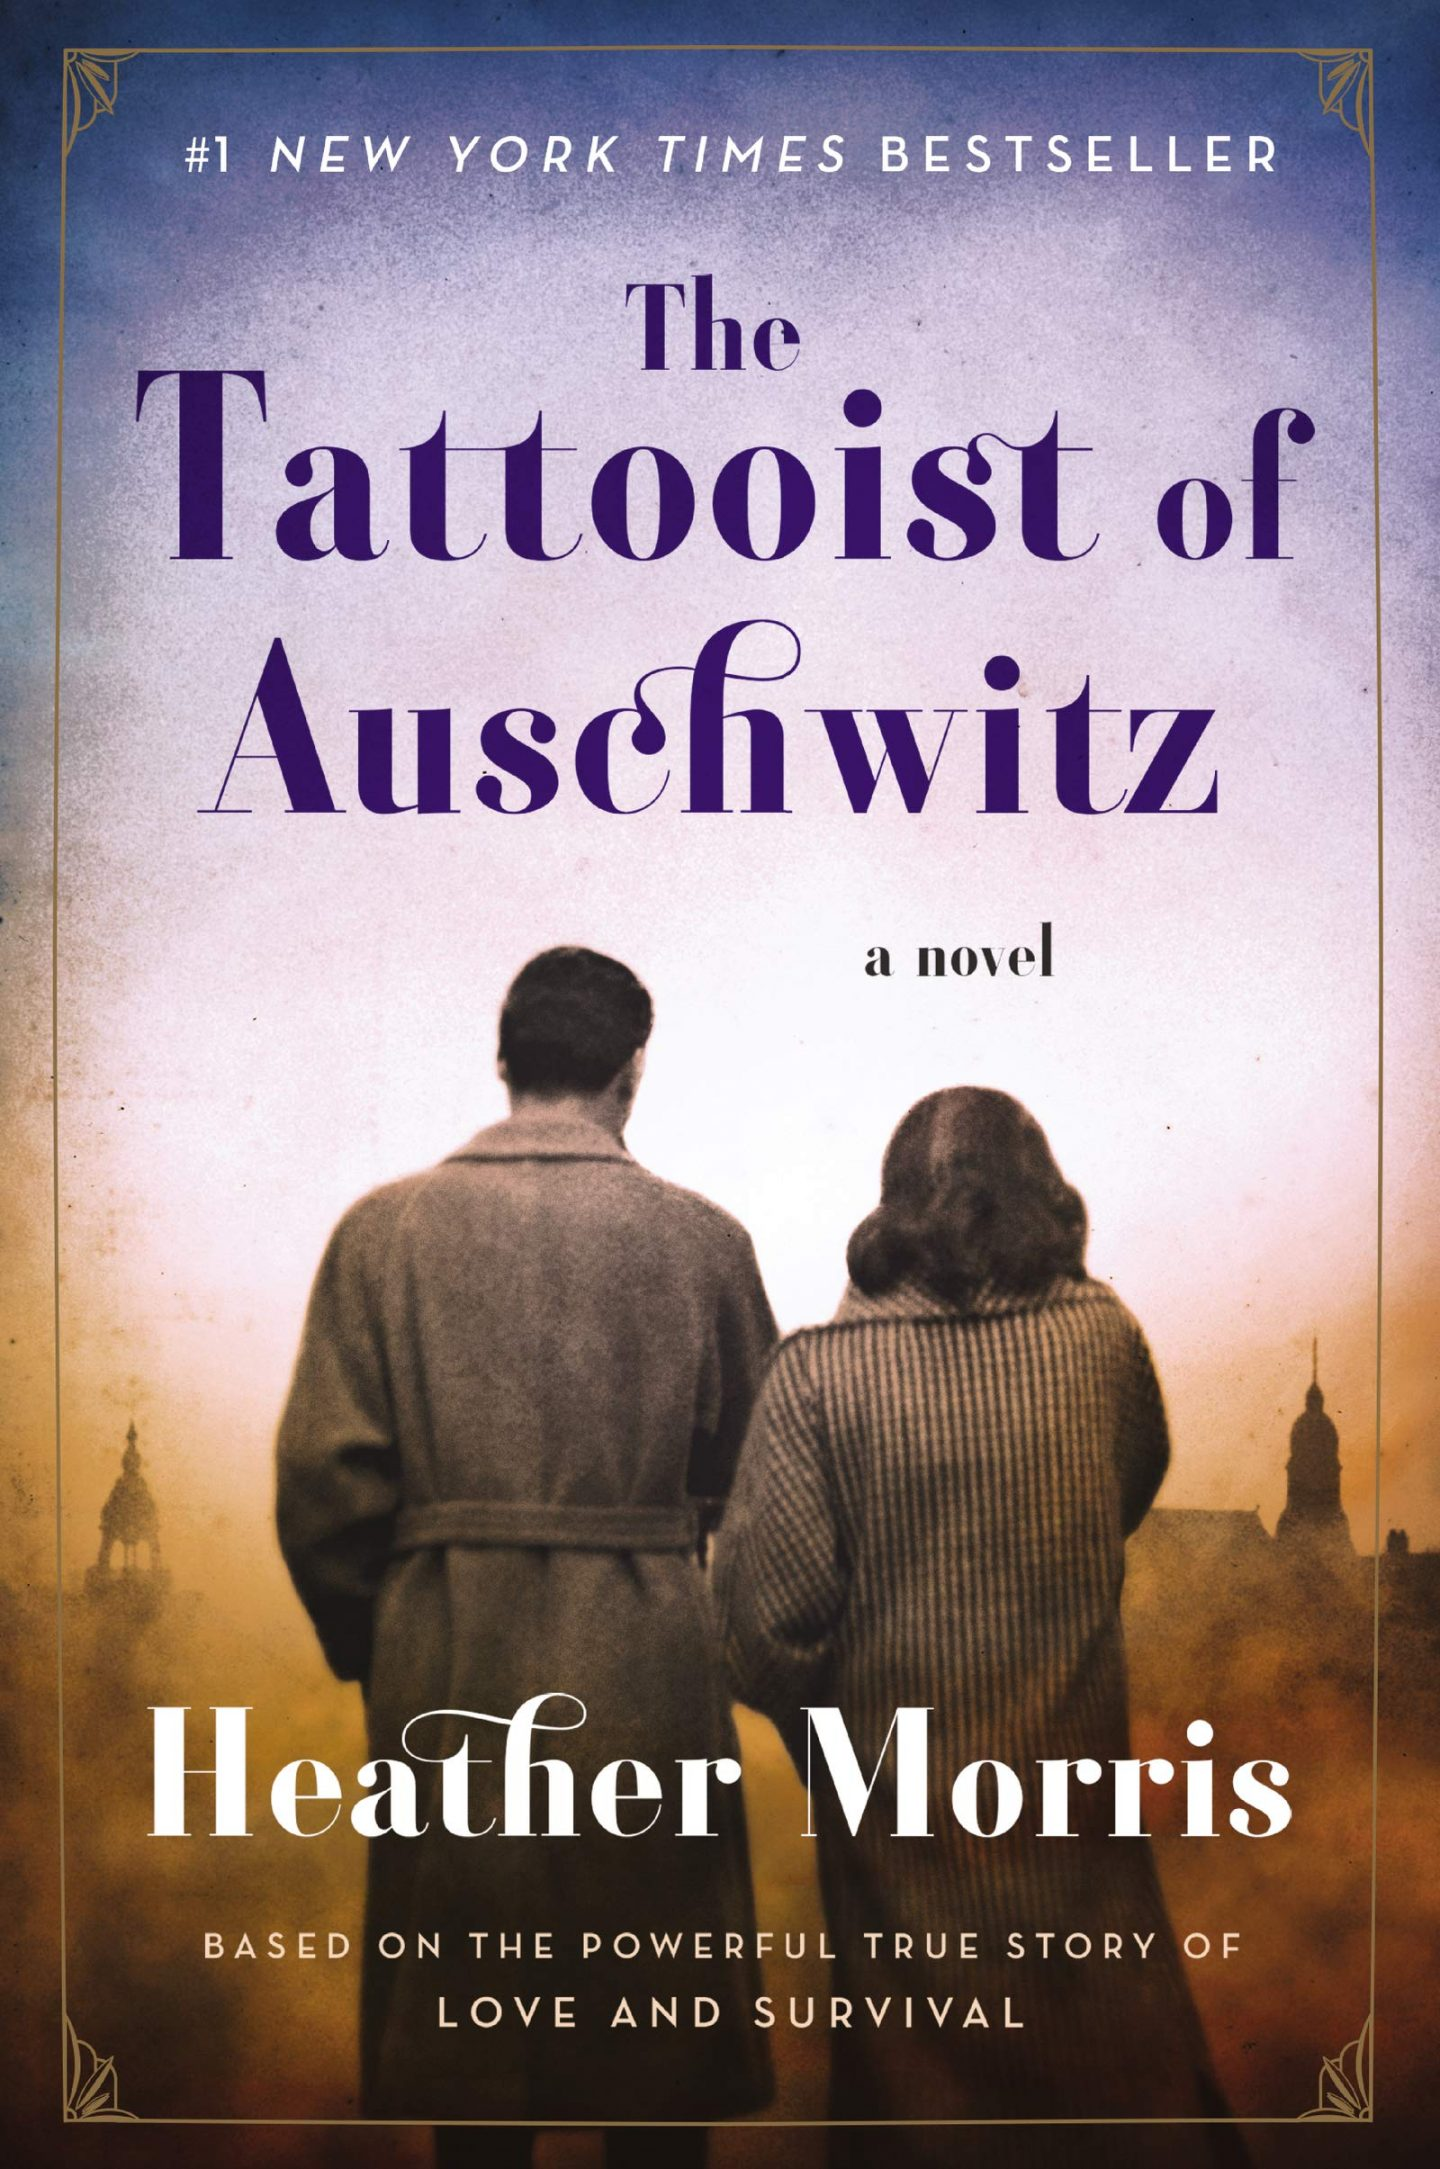 The tattooist of Auschwitz and 8 more Books for when you need a good cry. Heart breaking, tear jerking magical books to get all the feels. Romance books that make you cry as well as adventure and coming of age books. Young adult books and YA tear jerkers. Grab these amazing good reads today! #books #bookstoread